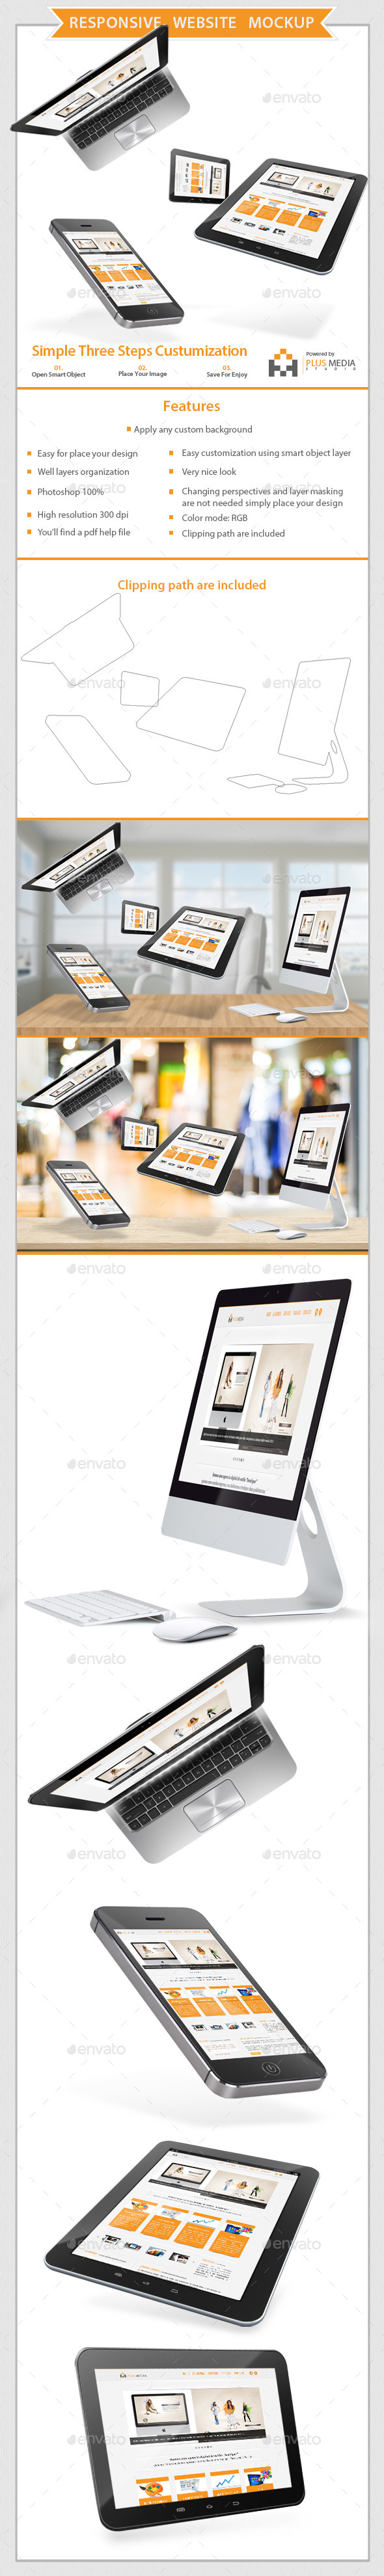 GraphicRiver Responsive Website Mockup 11410883